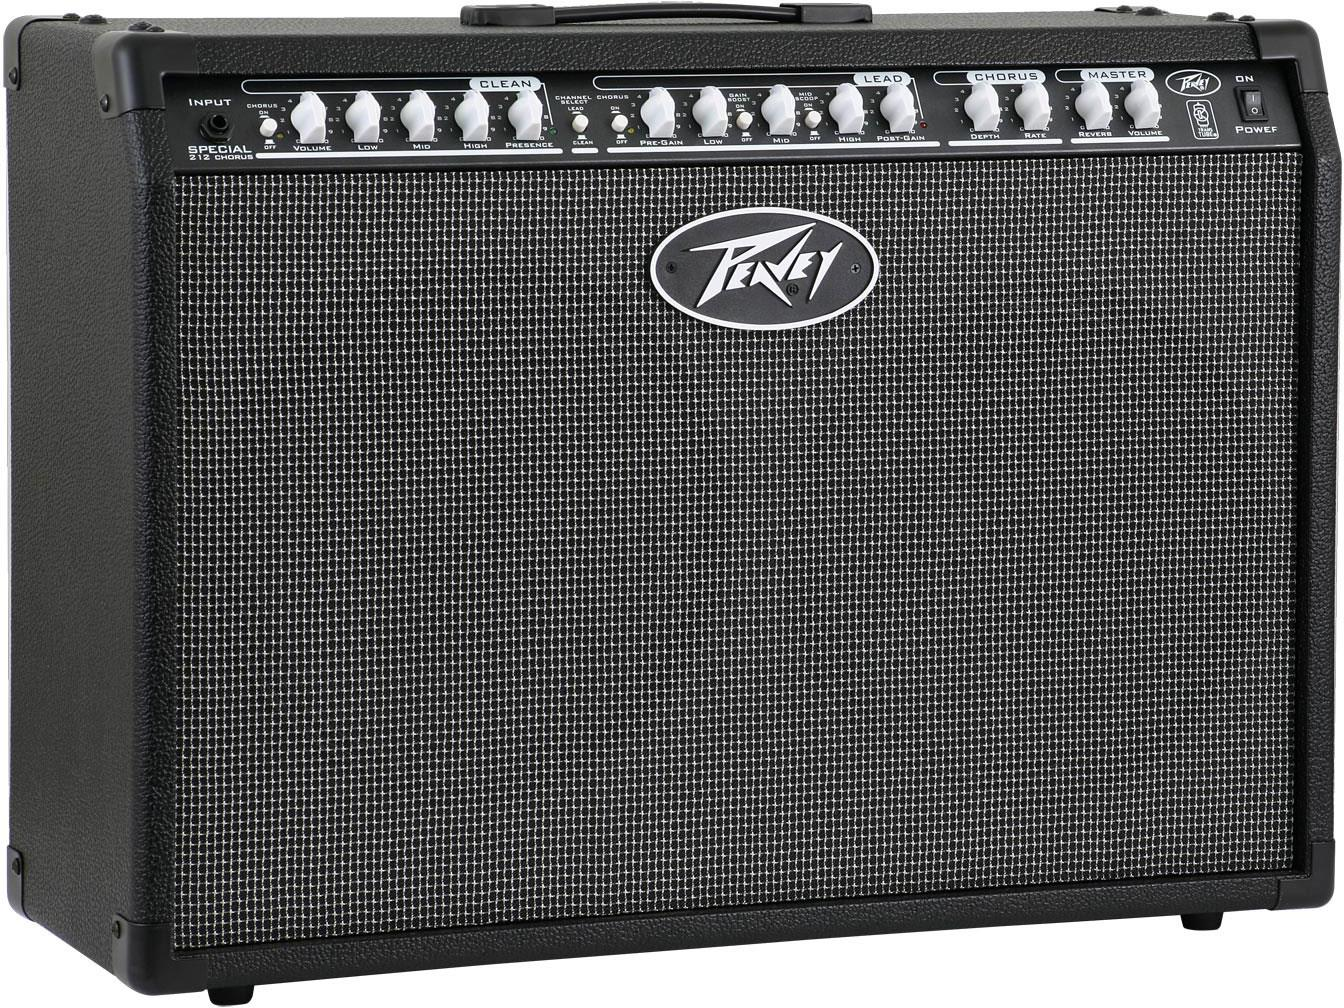 peavey special chorus 212 keymusic. Black Bedroom Furniture Sets. Home Design Ideas